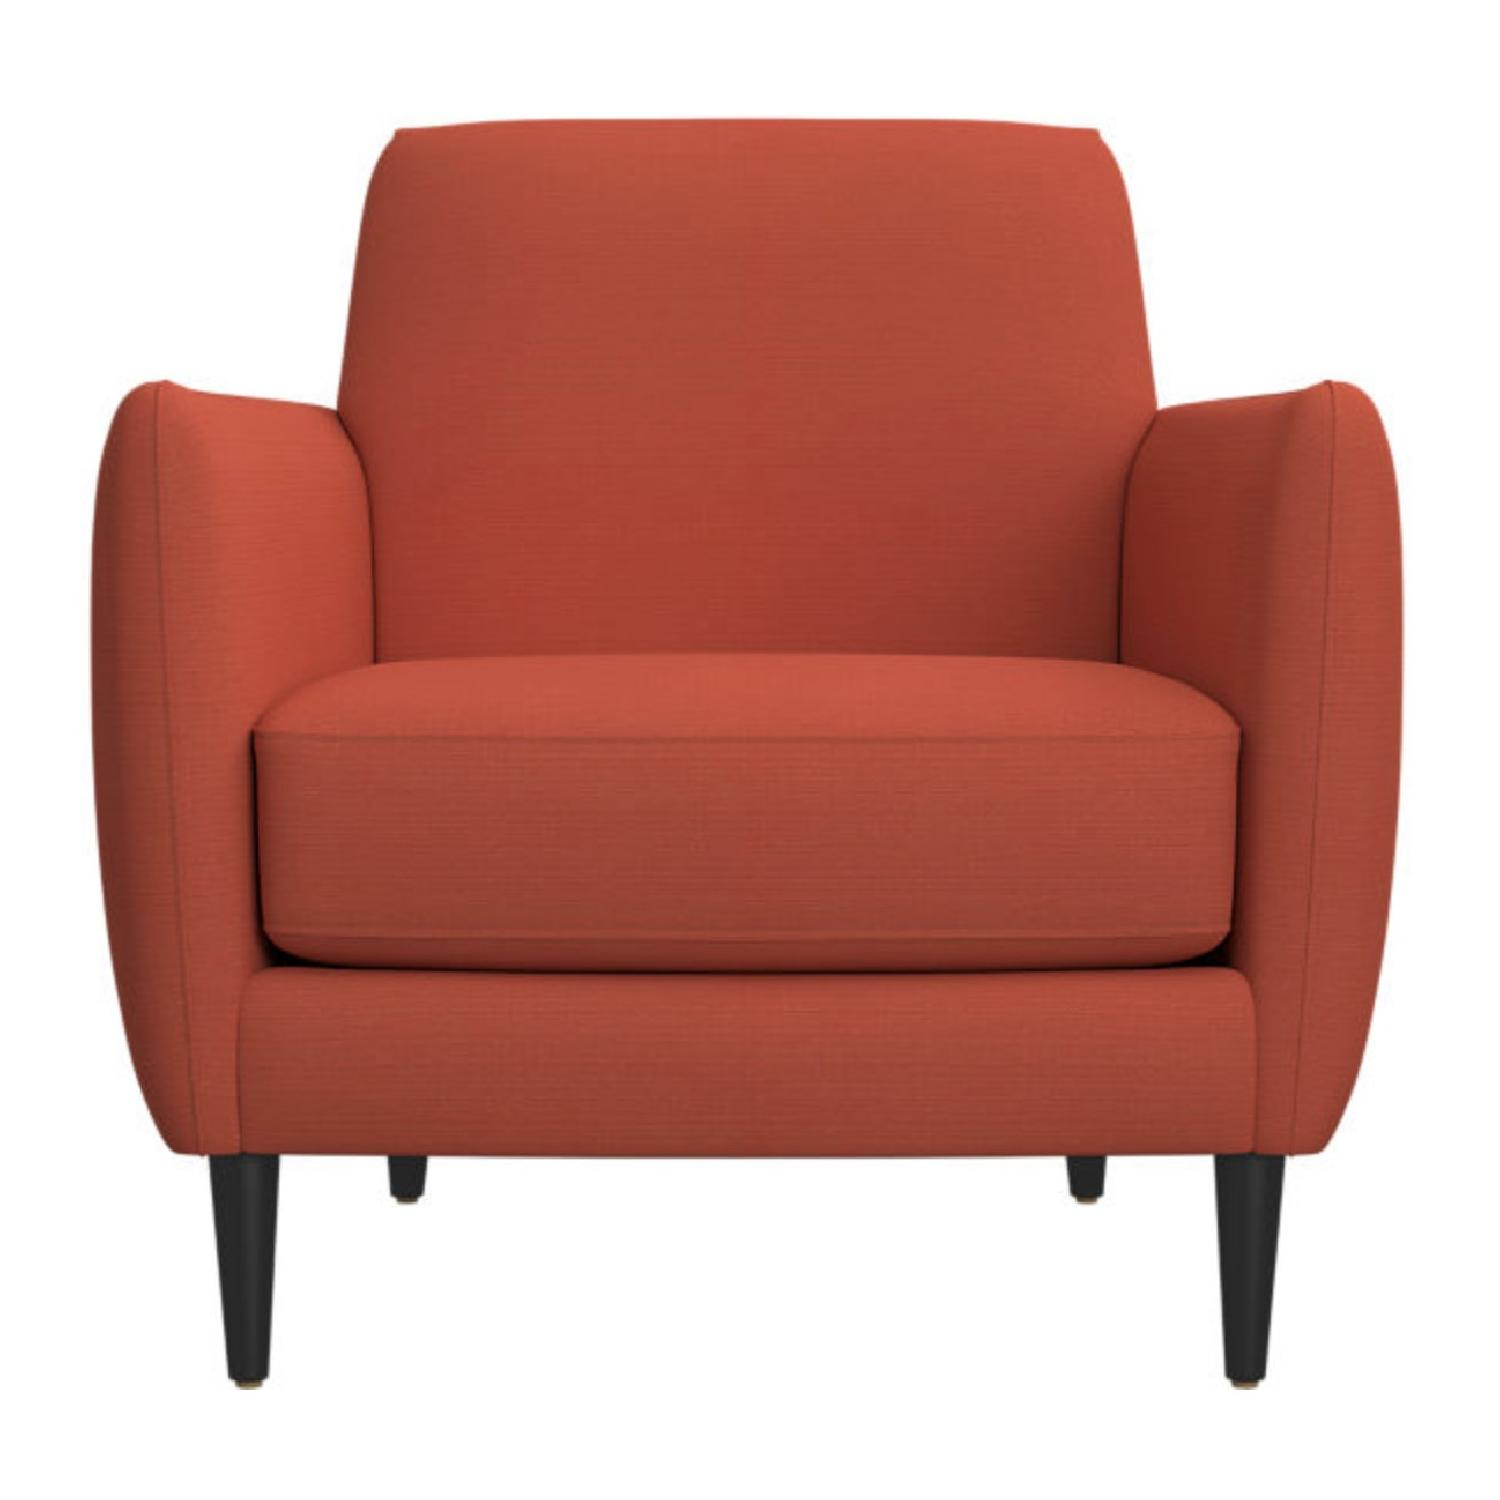 cb2 outdoor furniture. CB2 Parlour Chair In Atomic Blood Orange Cb2 Outdoor Furniture